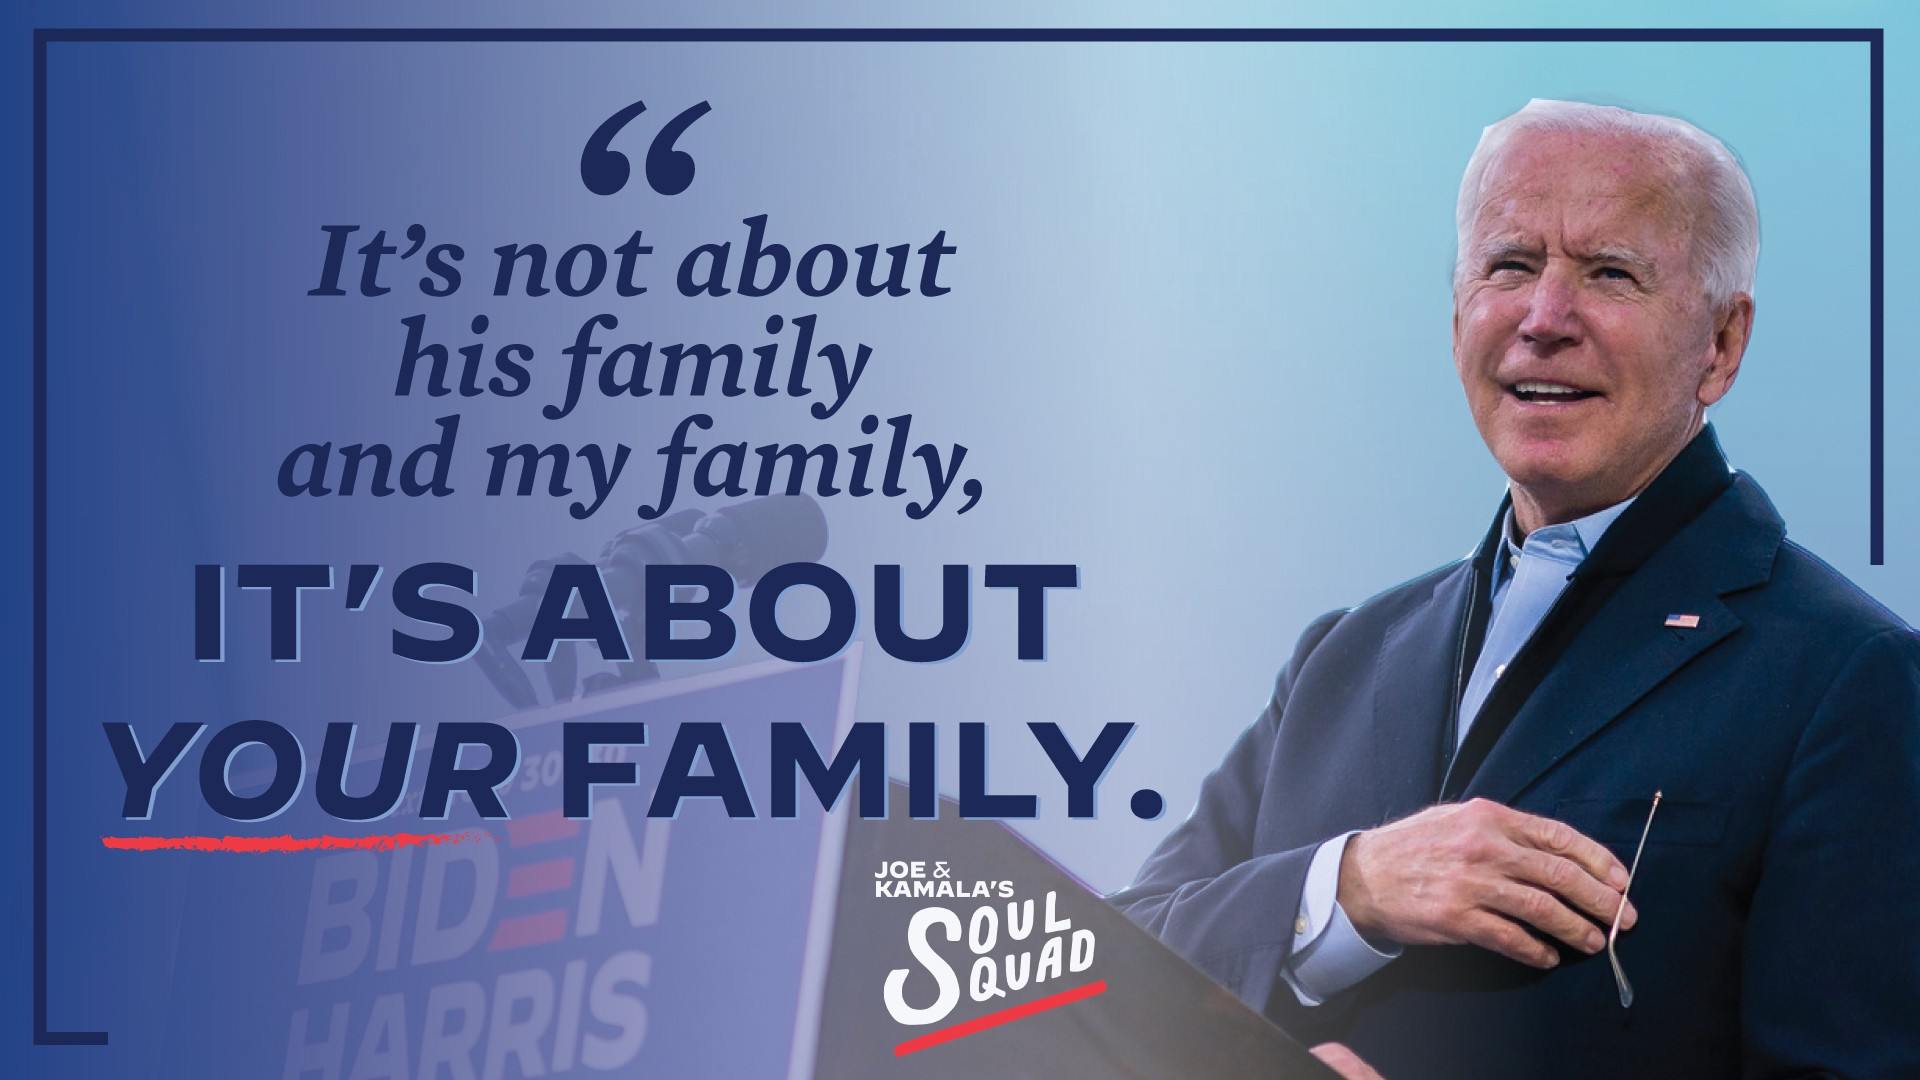 """Photo of Joe Biden with a quote from the final debate: """"It's not about his family and my family, it's about your family."""""""